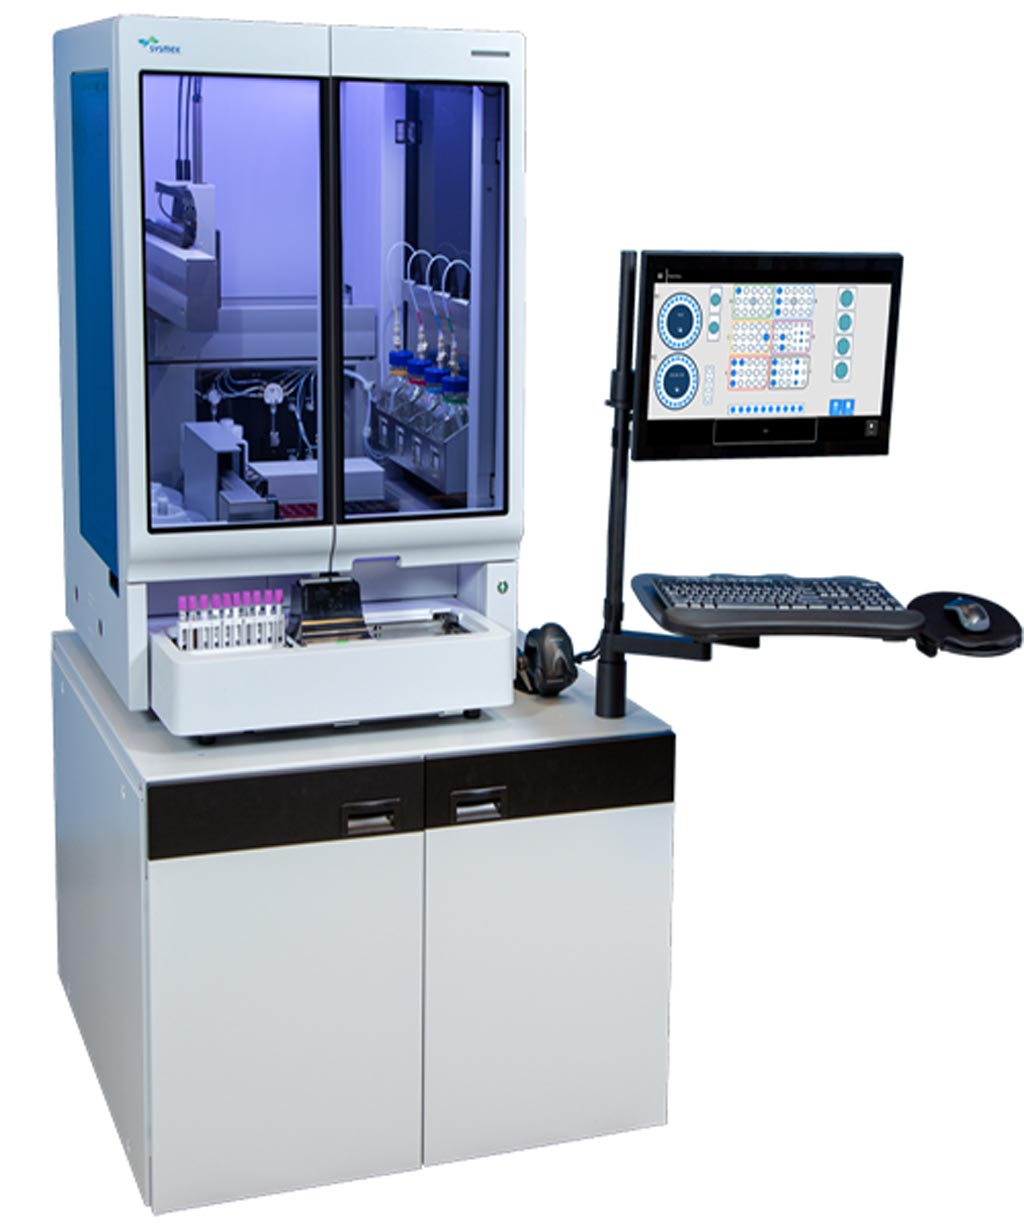 Image: The PS-10, designed for complex laboratory-developed tests and routine flow cytometry applications (Photo courtesy of Sysmex America).